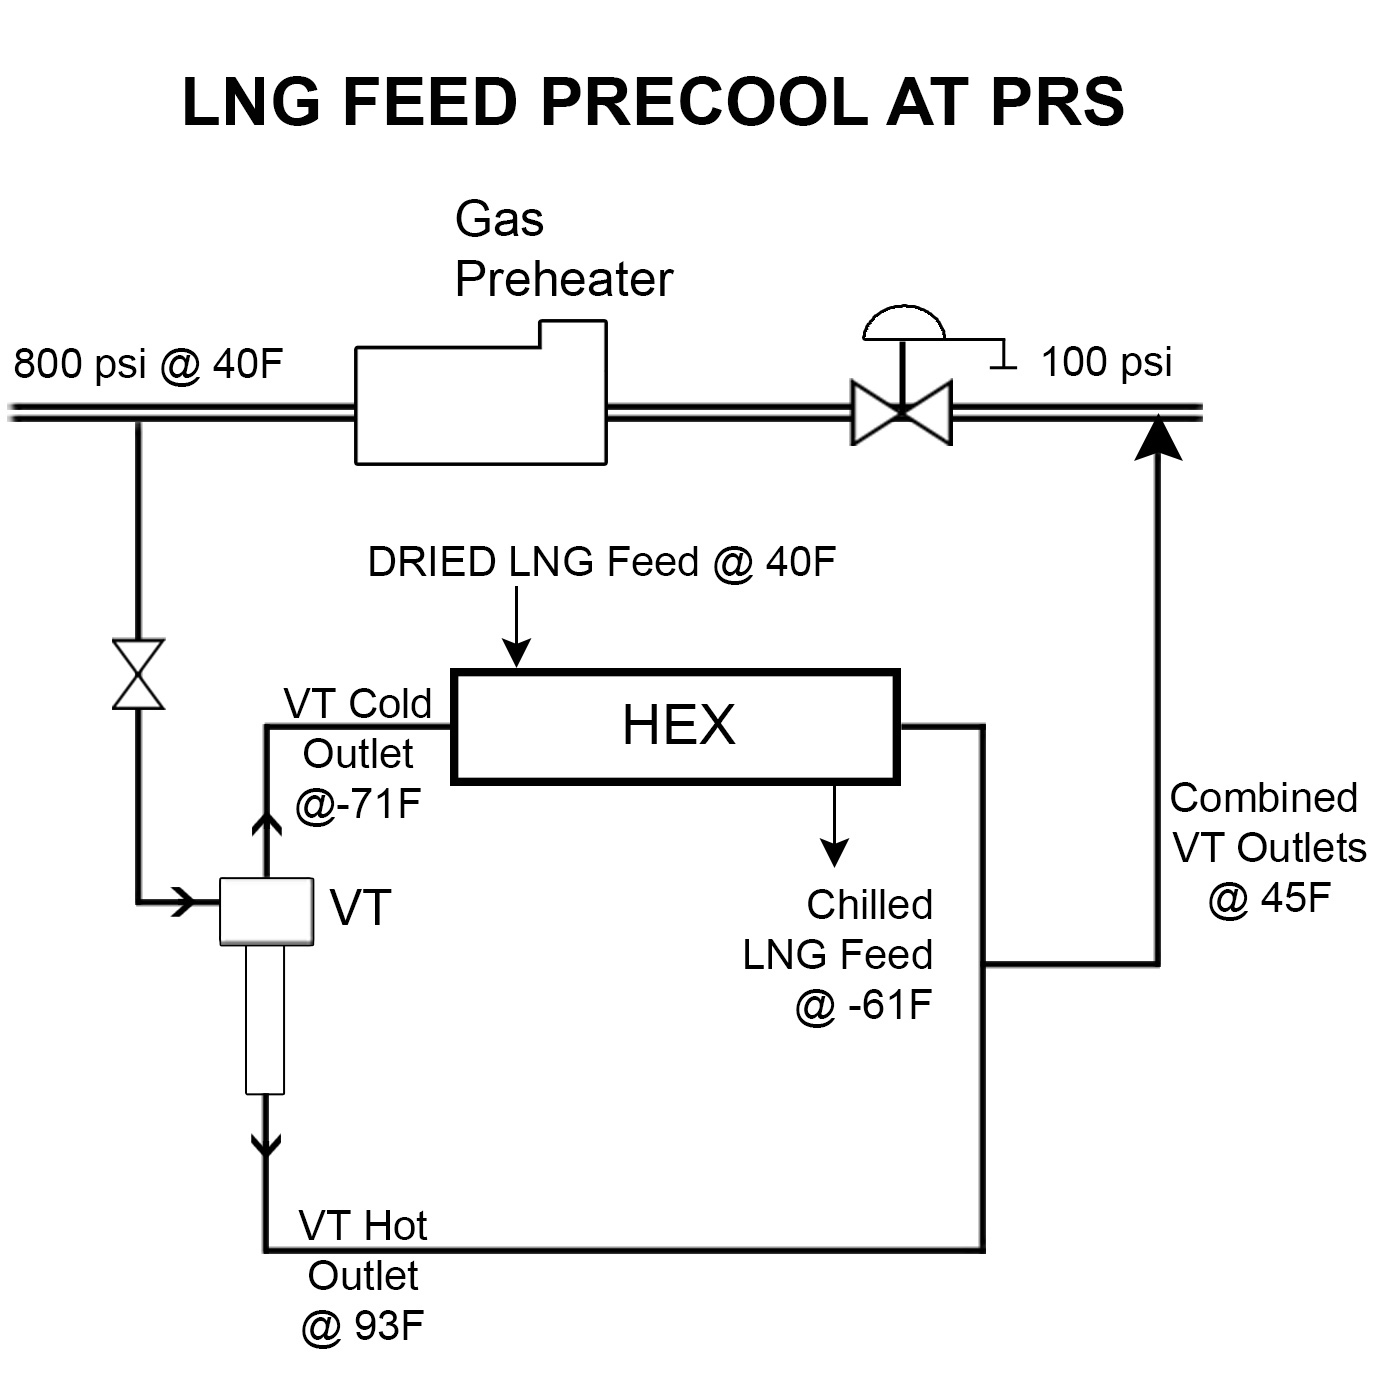 LNG Feed Precool at PRS